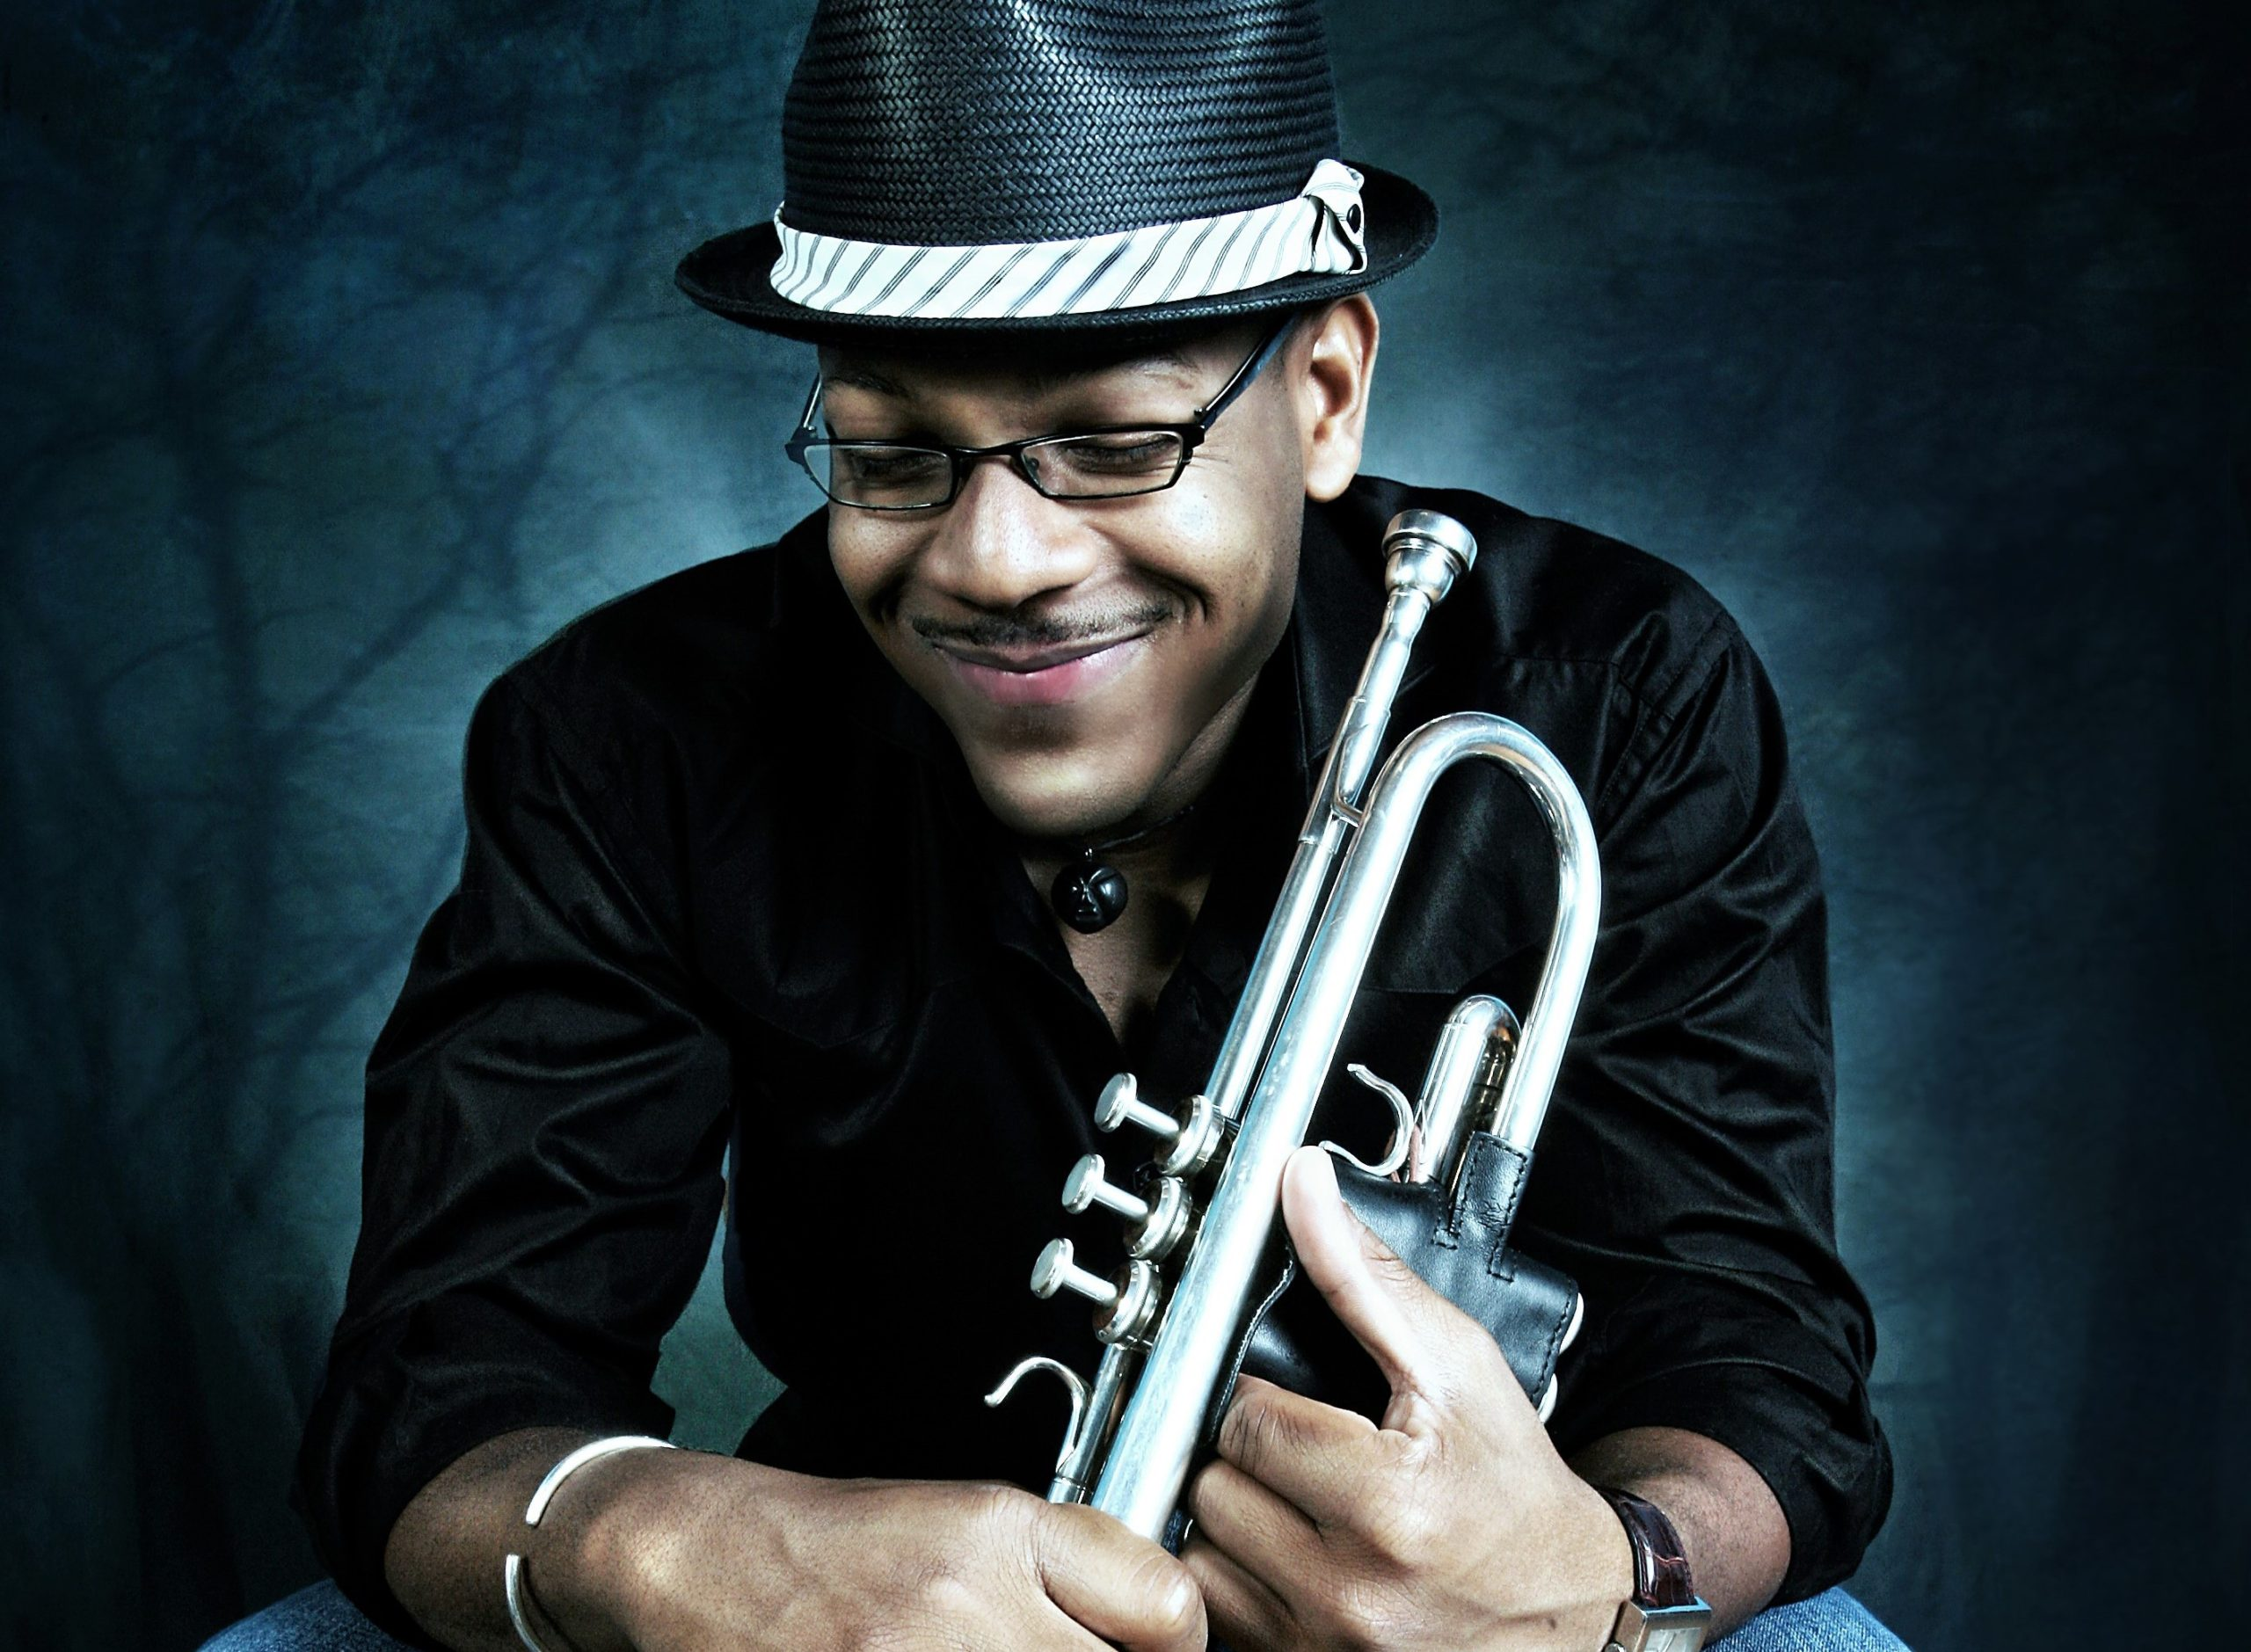 Etienne Charles and the U.S. Army Blues Band Headline the 13th Annual Trumpet Fest at WCU